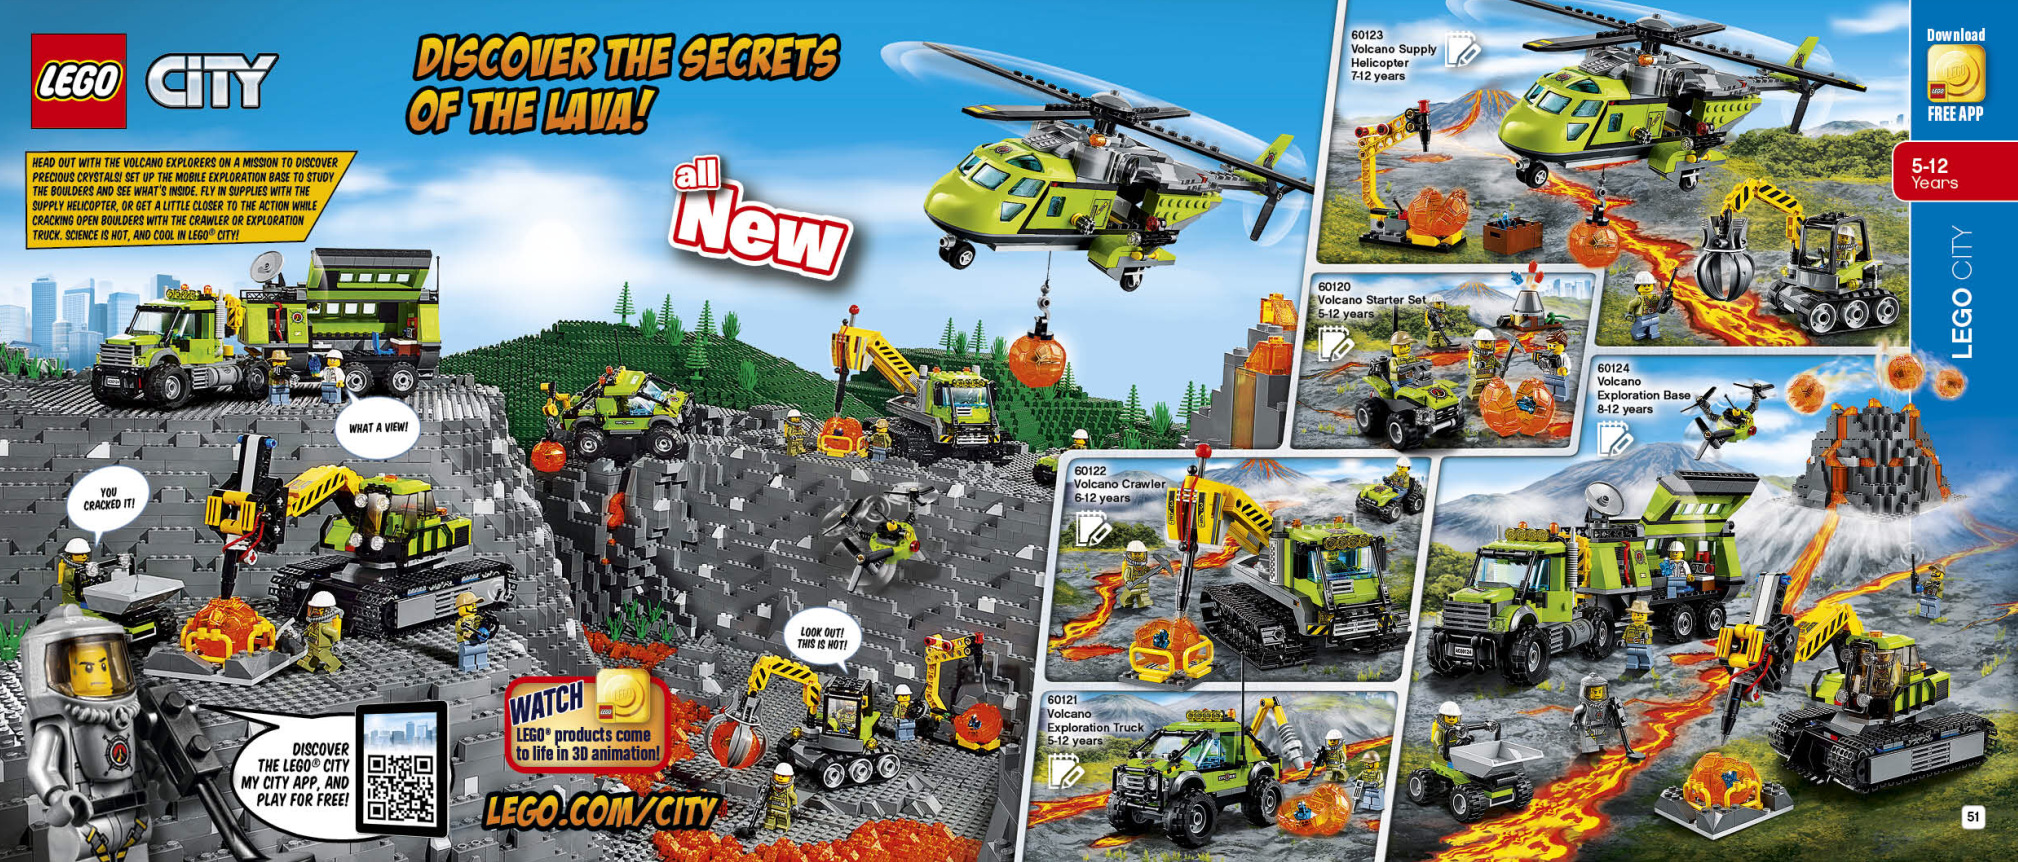 legos helicopter with Second Half 2hy 2016 Lego Catalogue June December on Bonus Acheter Les Jeux De Construction Lego Jurassic World Au Meilleur as well 2014 Lego City Police Town Sets likewise Walkthrough Lego Jurassic World Storyline Jurassic Park 2 The Lost World besides Watch also Second Half 2hy 2016 Lego Catalogue June December.